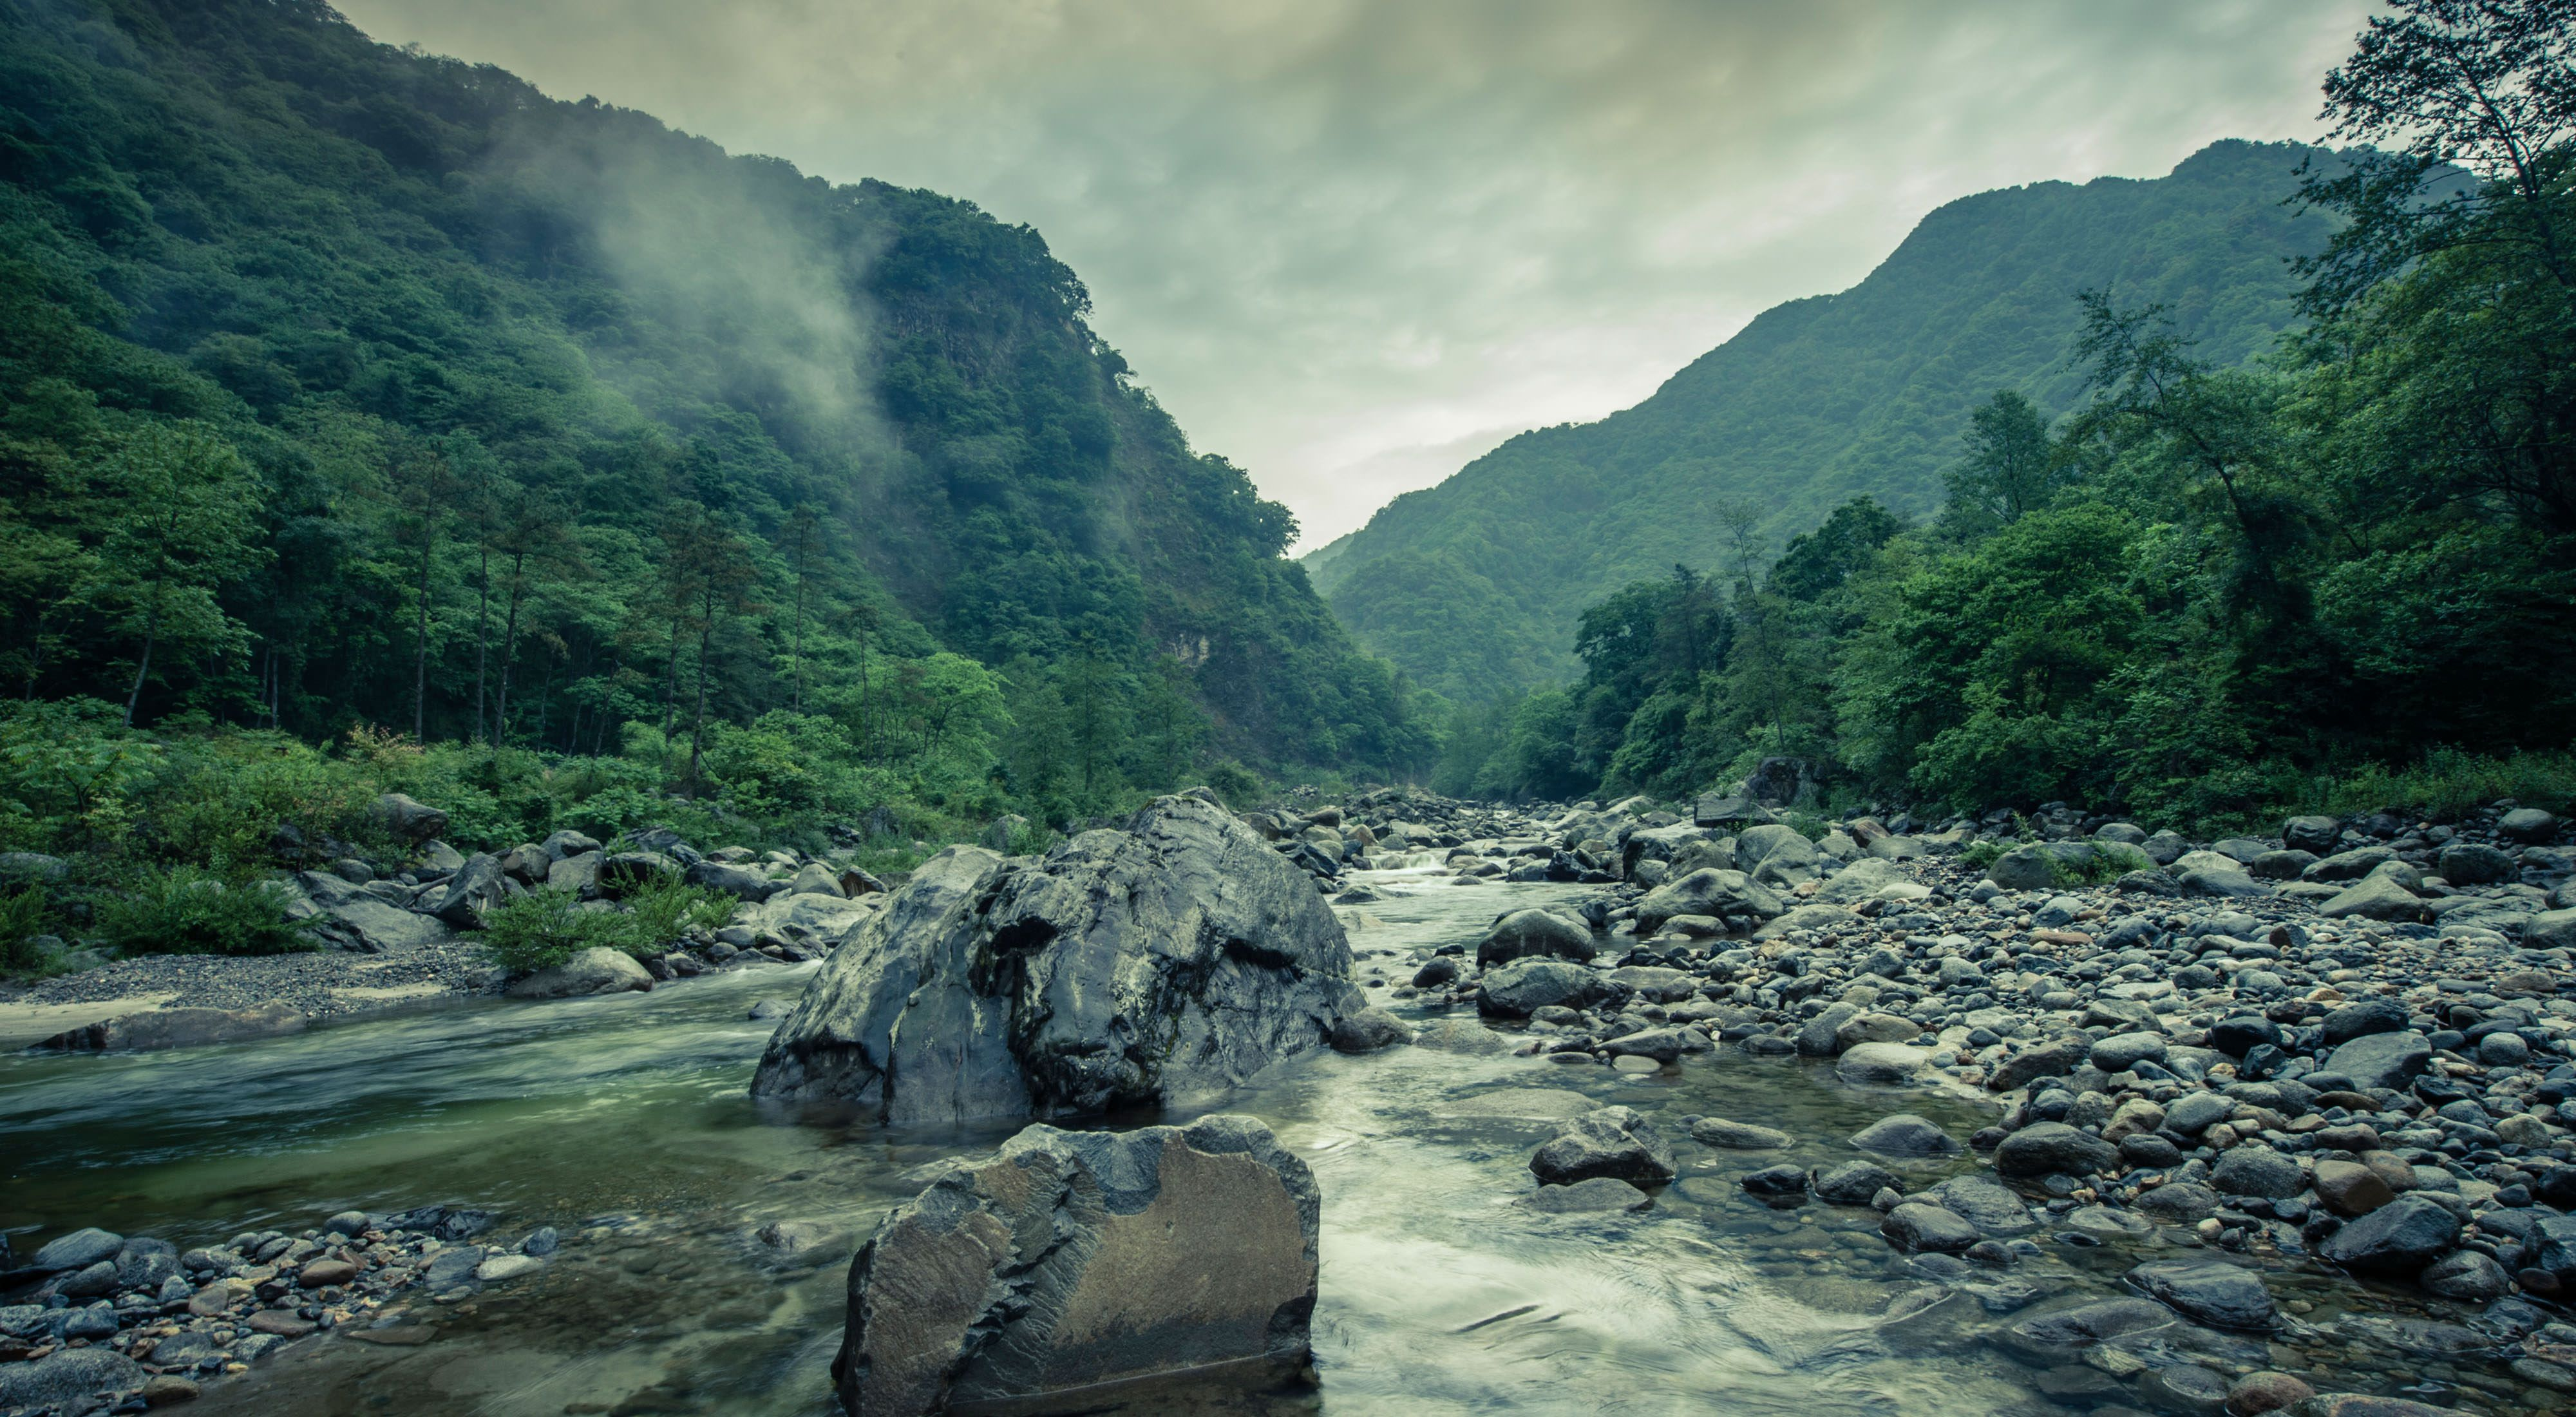 a rocky riverbed surrounded by lush greenery